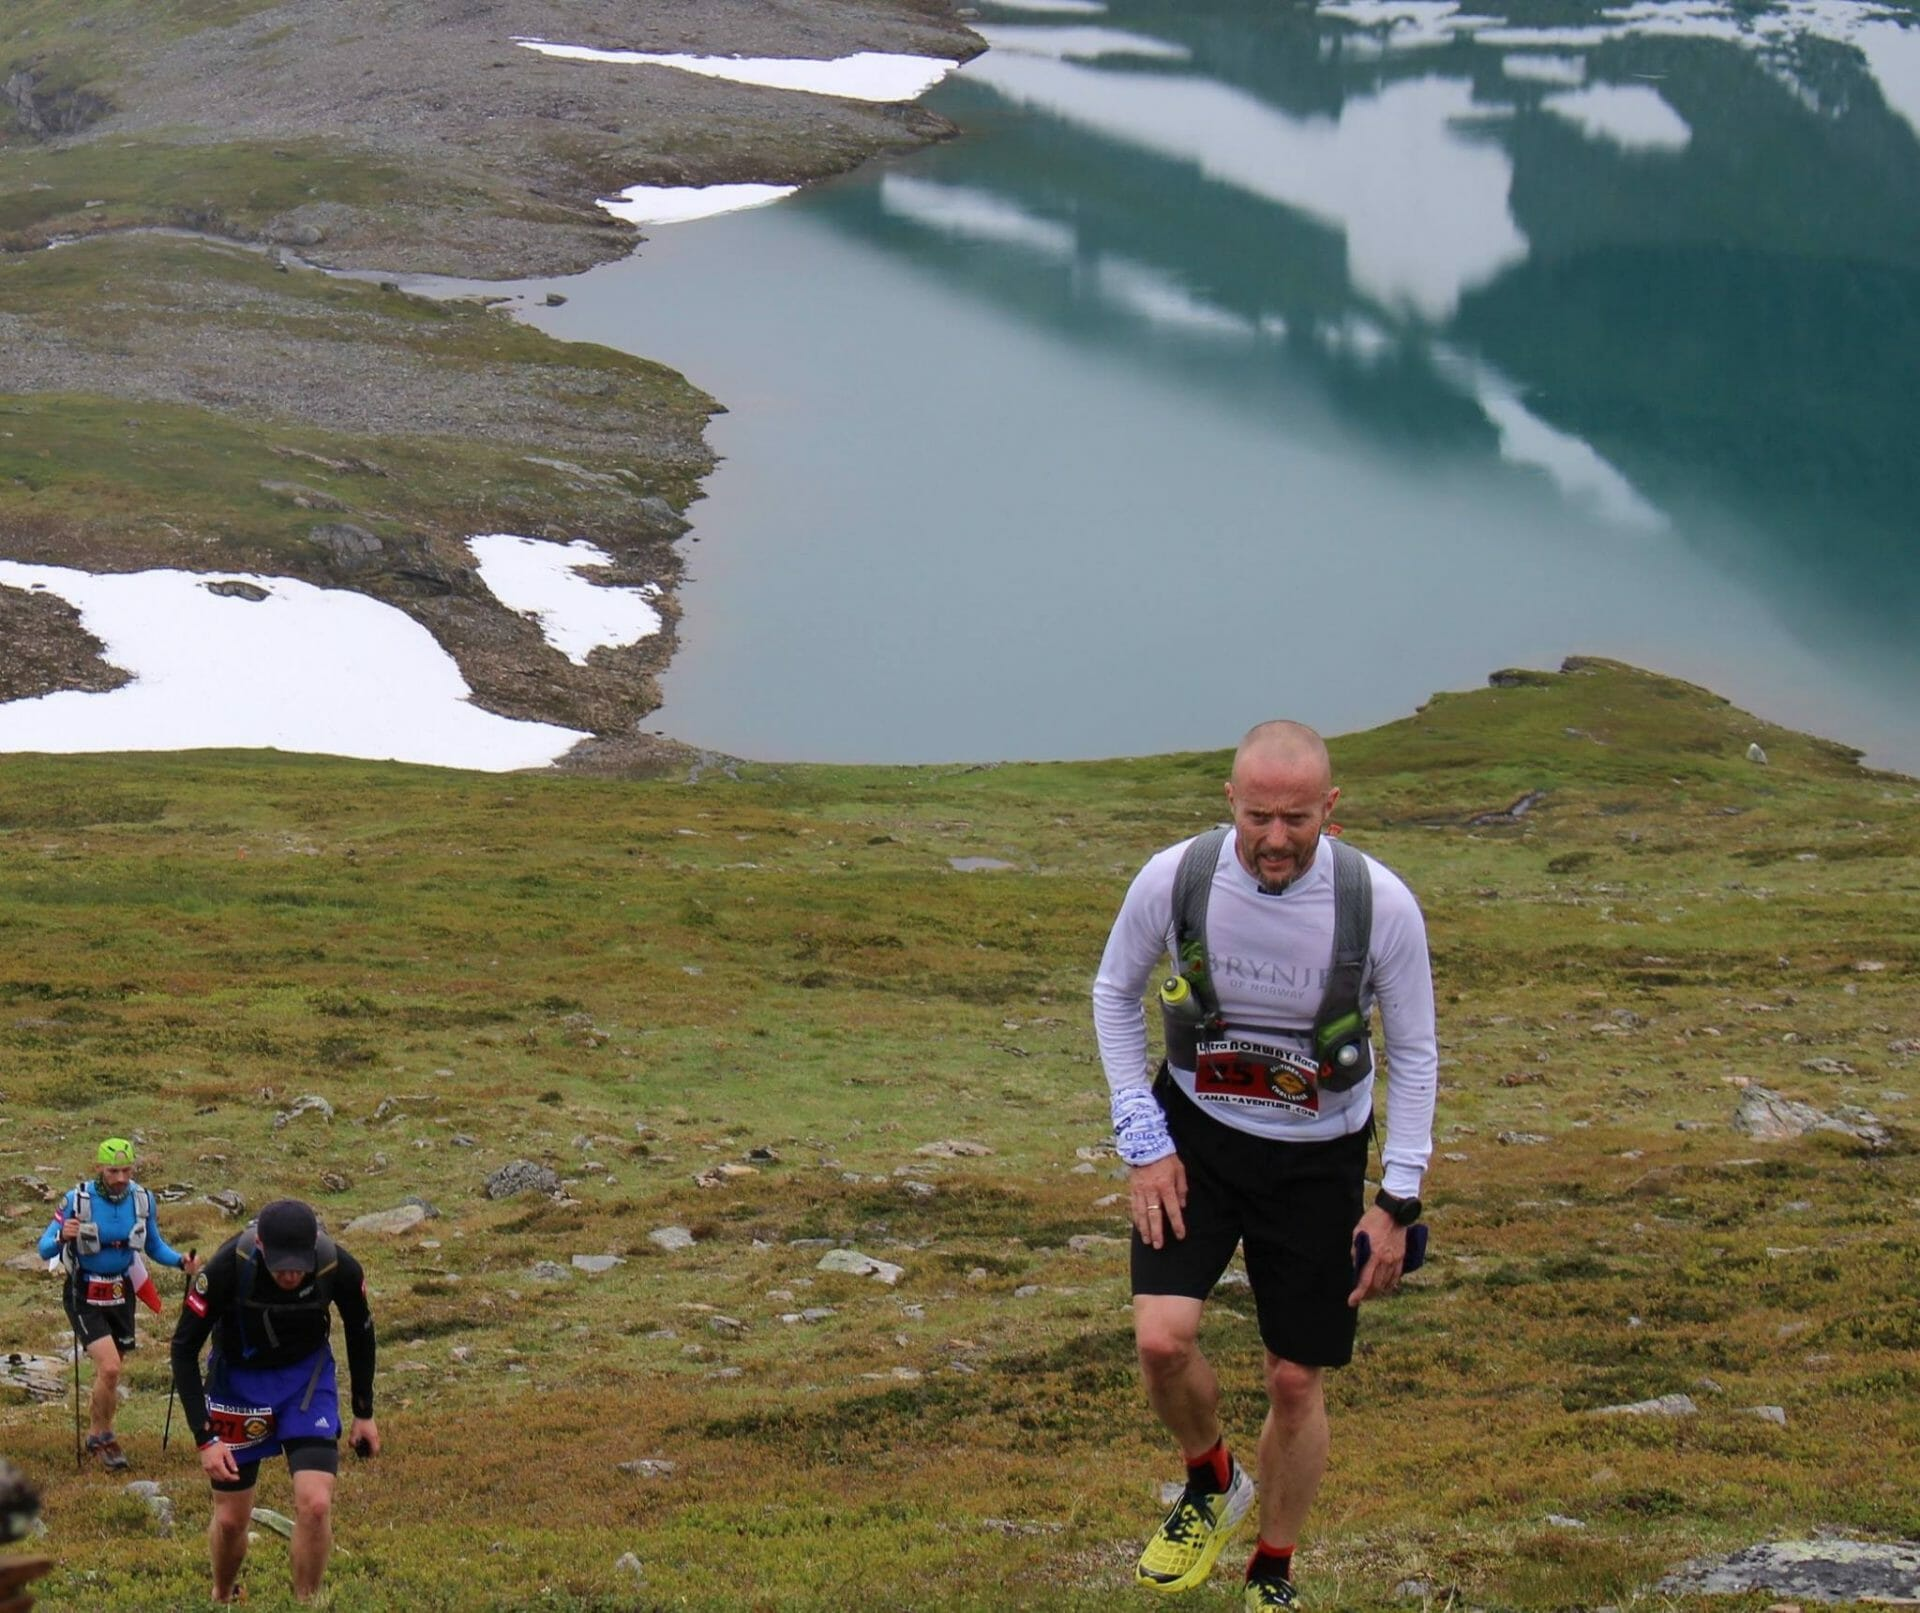 Canal-Aventure :: First stage, Ultra Norway Race